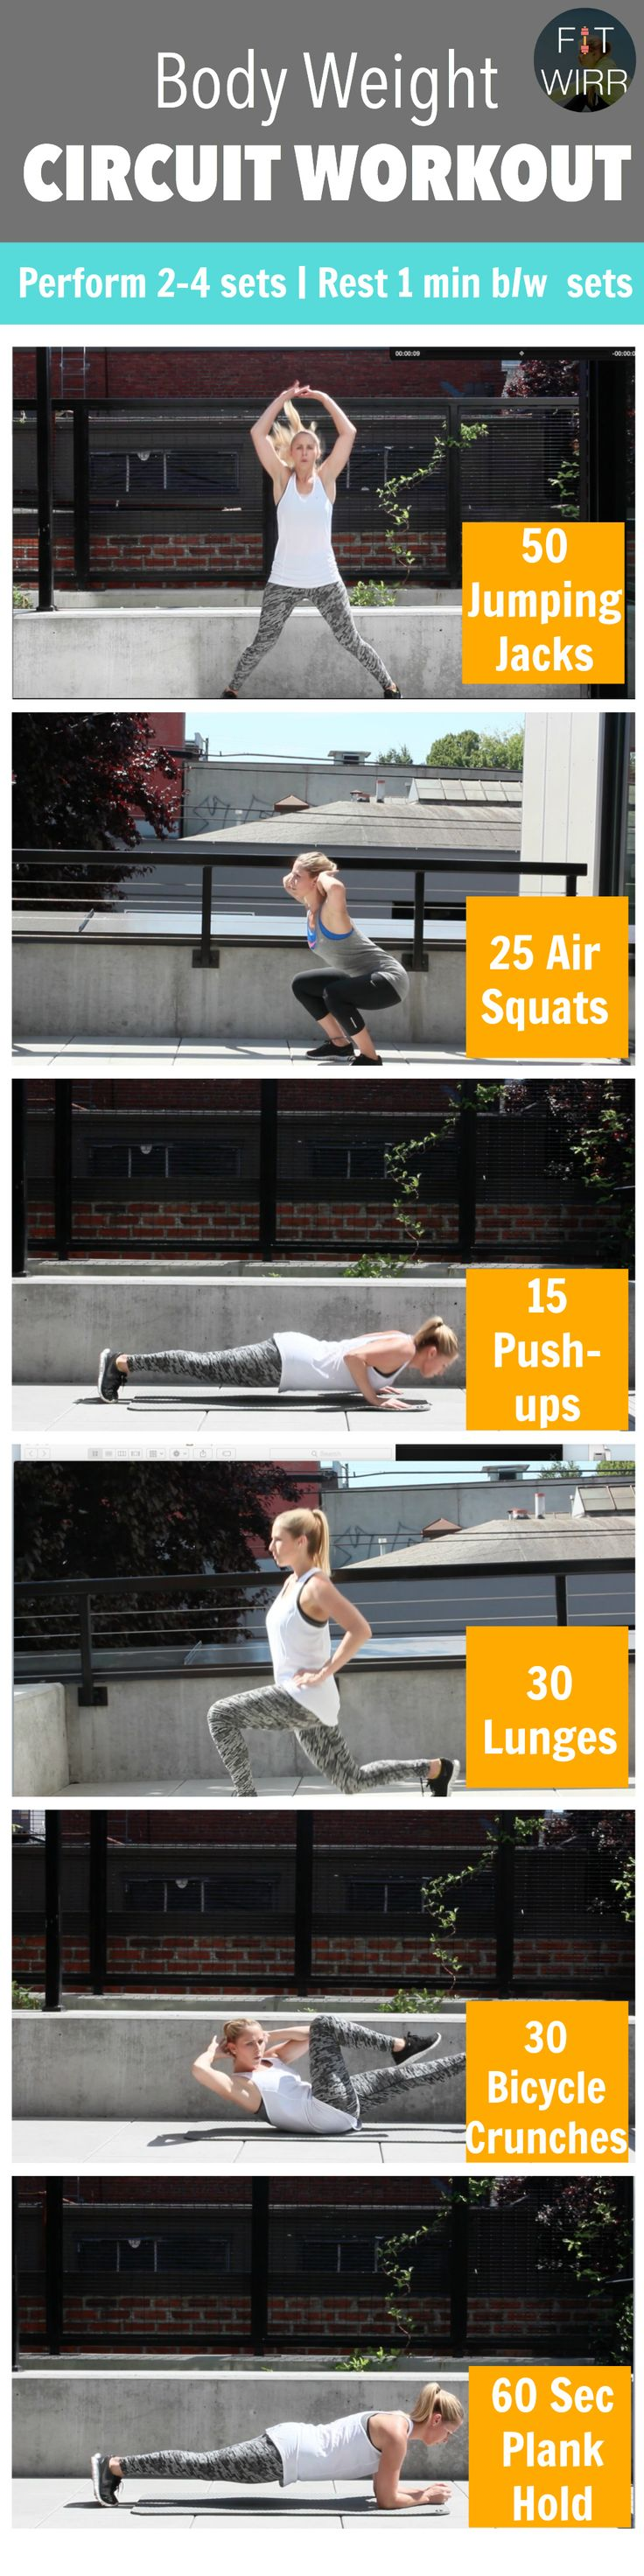 This bodyweight workout routine uses your own body weight as resistance and requires no other fitness equipments. Since all it takes is some space and your own weight, a bodyweight workout routine is suitable for home and travel.